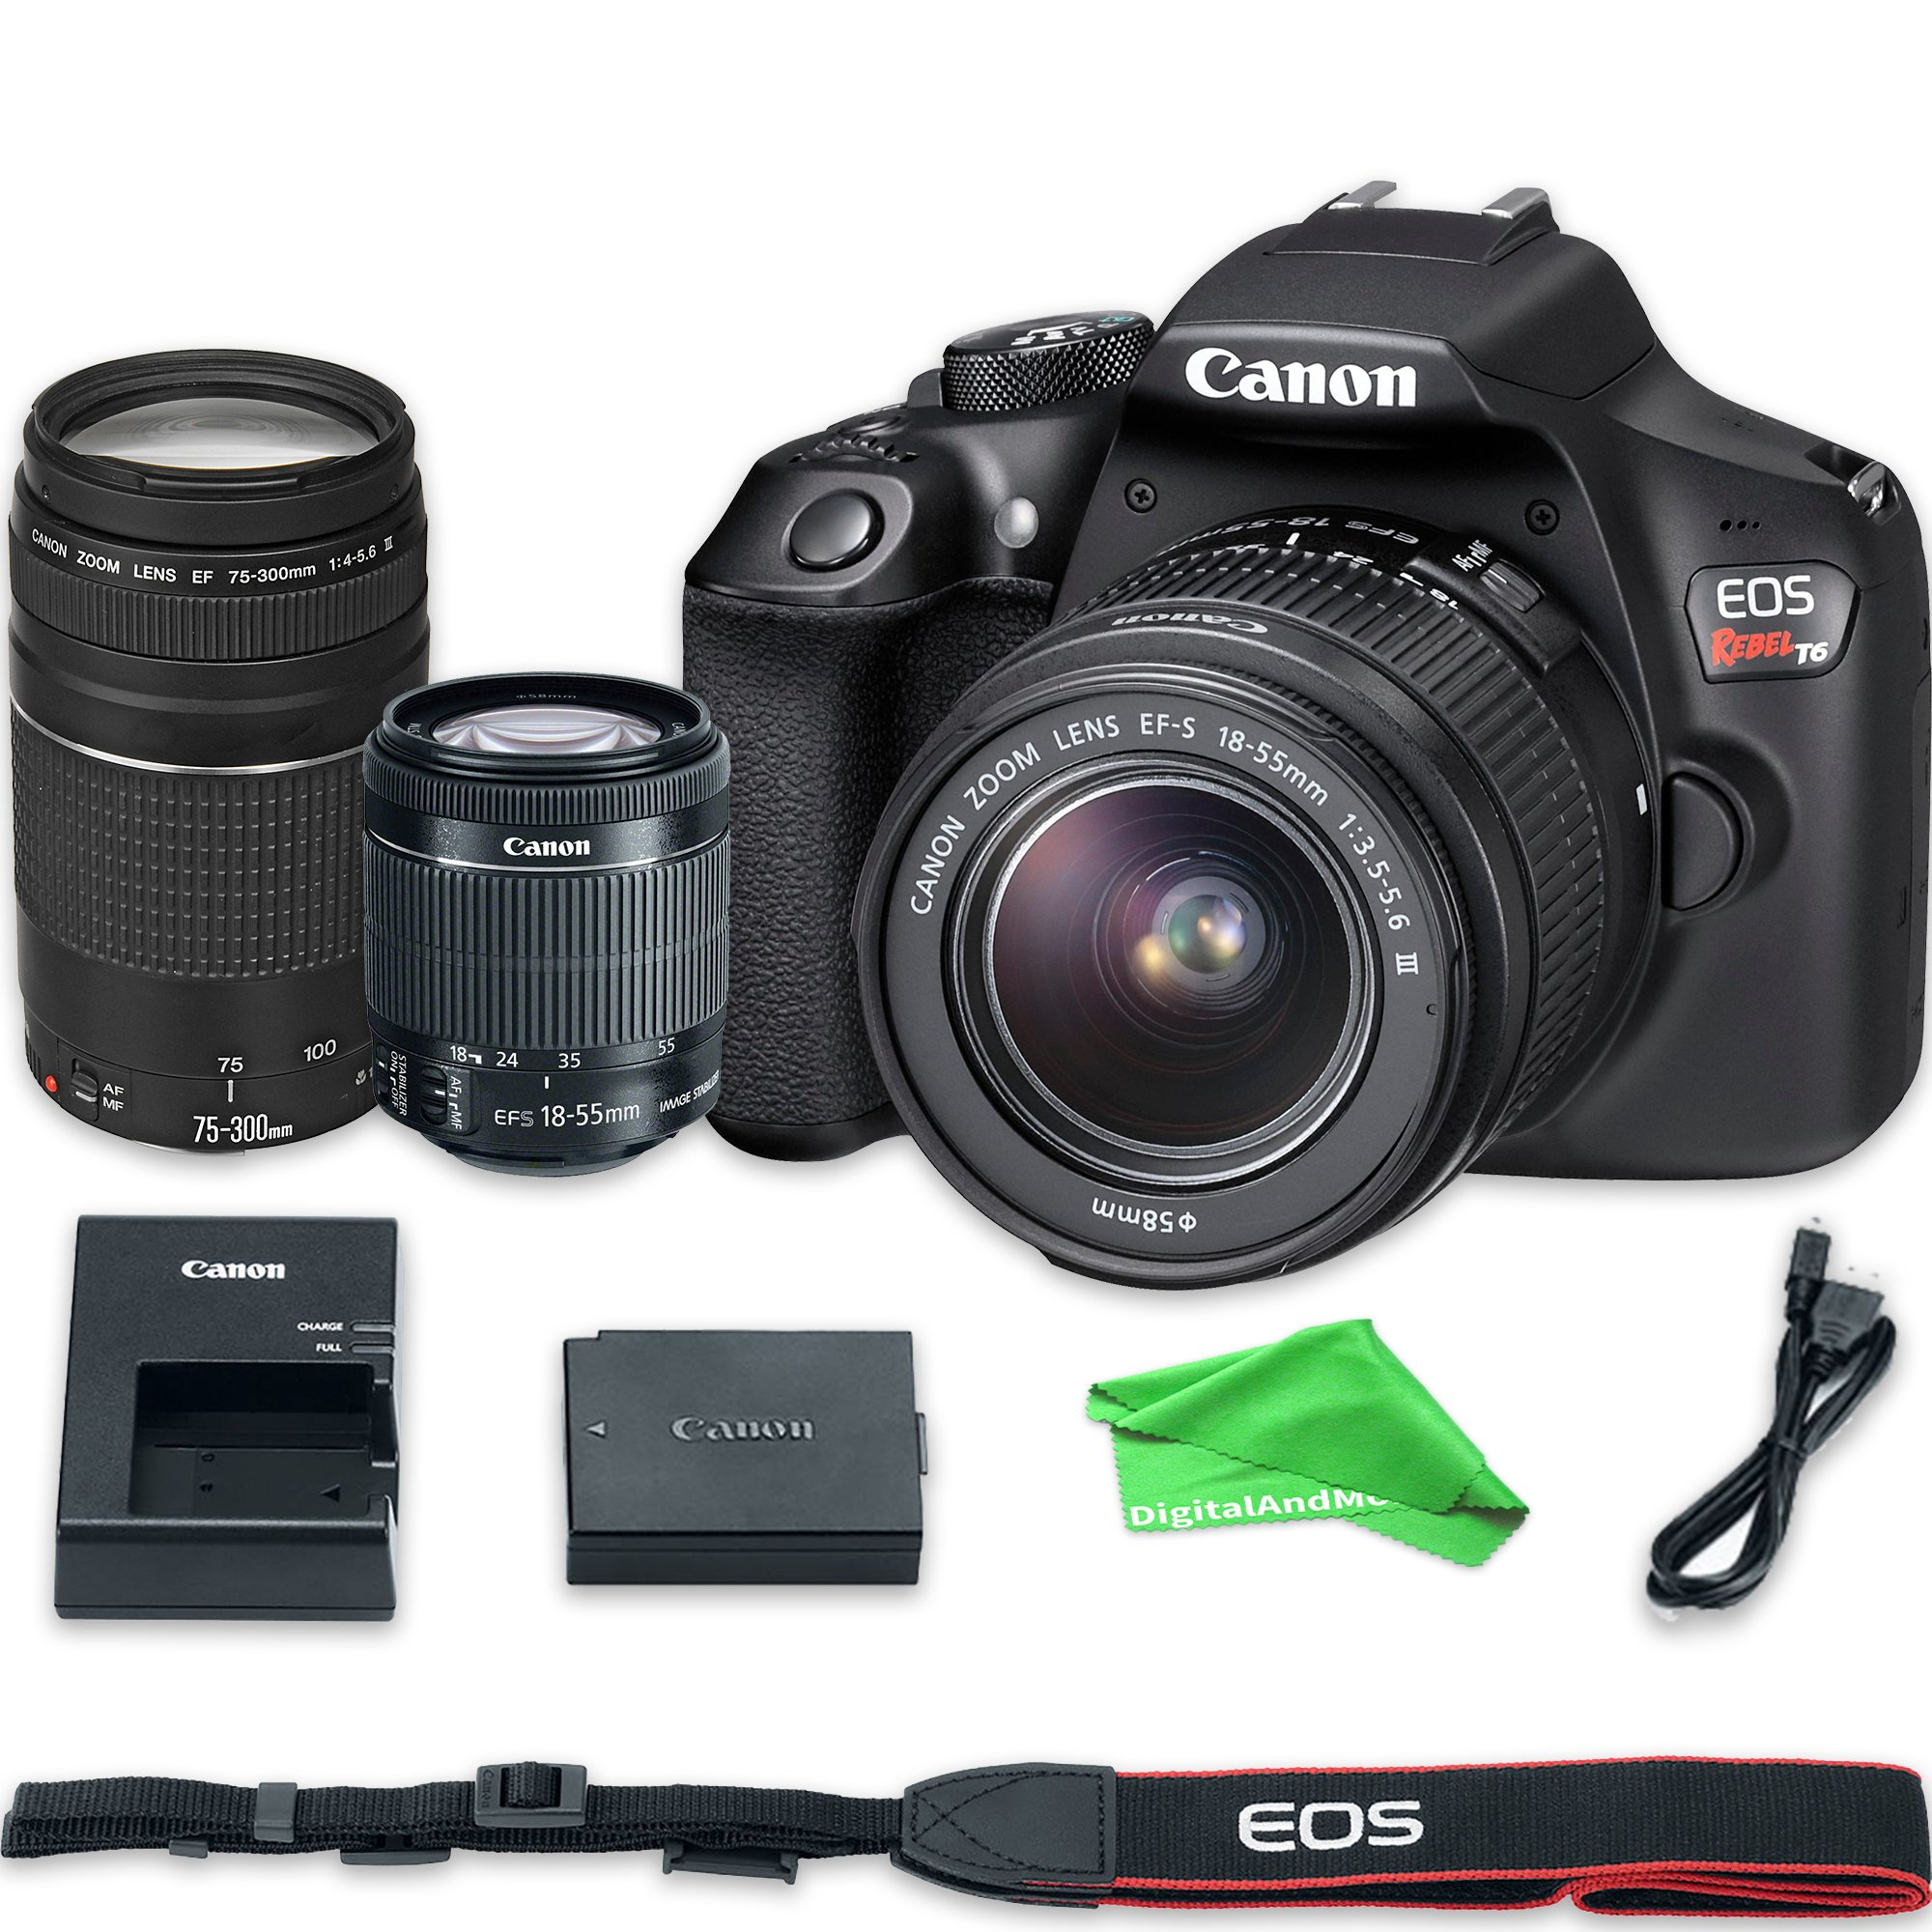 Canon EOS Rebel T6 Digital SLR Camera with 18-55mm EF-S f/3.5-5.6 IS II Lens & EF 75-300mm f/4-5.6 III Lens + DigitalAndMore Microfiber Cloth